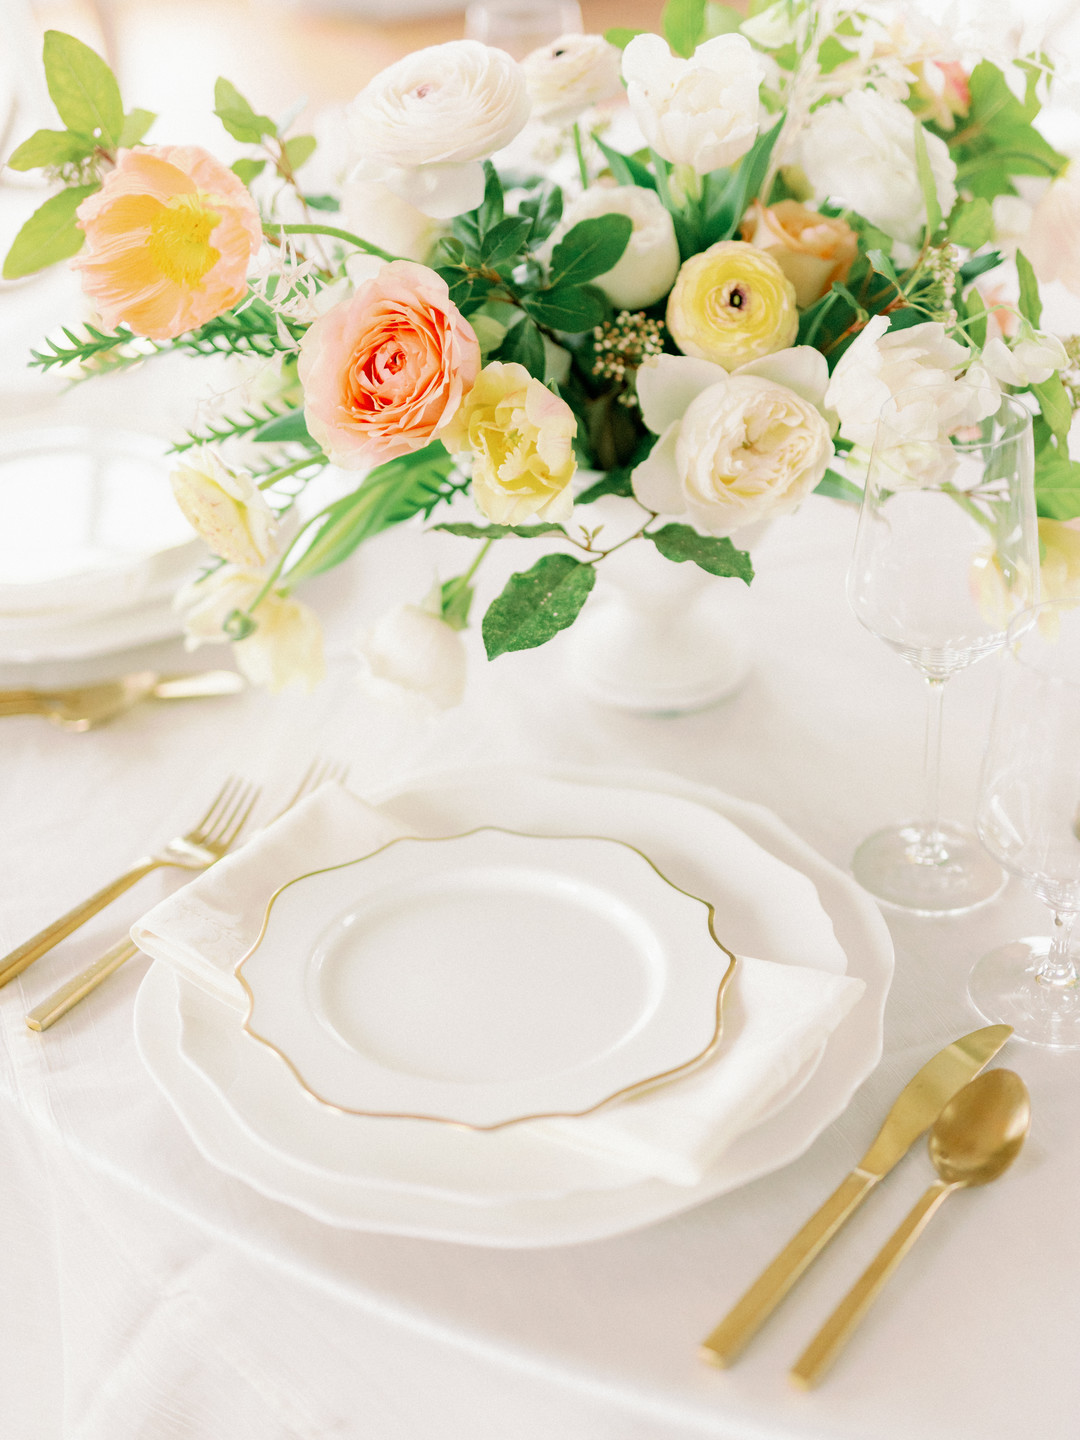 soft ivory twist linen with a magnolia charger and plate accented with a trieste gold salad plate and flatware.